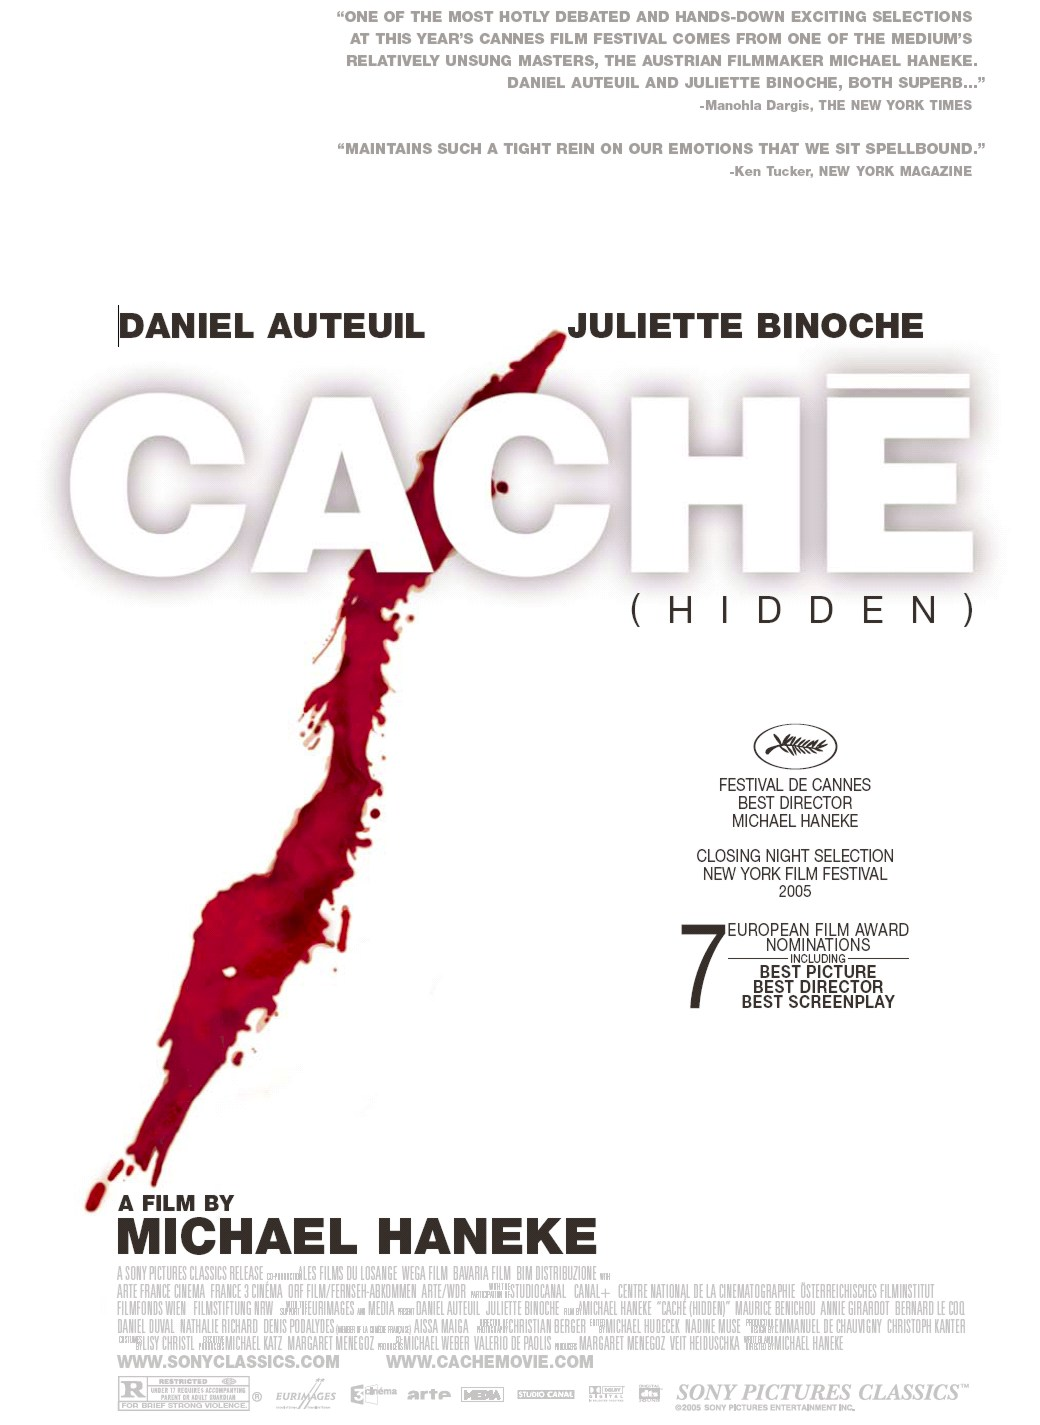 Cache (2005) - Directed by: Michael HanekeStarring: Daniel Auteuil, Juliette Binoche, Maurice BenichouRated: R for Brief Strong ViolenceRunning Time: 1 h 57 mTMM Score: 4.5 stars out of 5STRENGTHS: Directing, Writing, ActingWEAKNESSES: Mild Pacing Issues